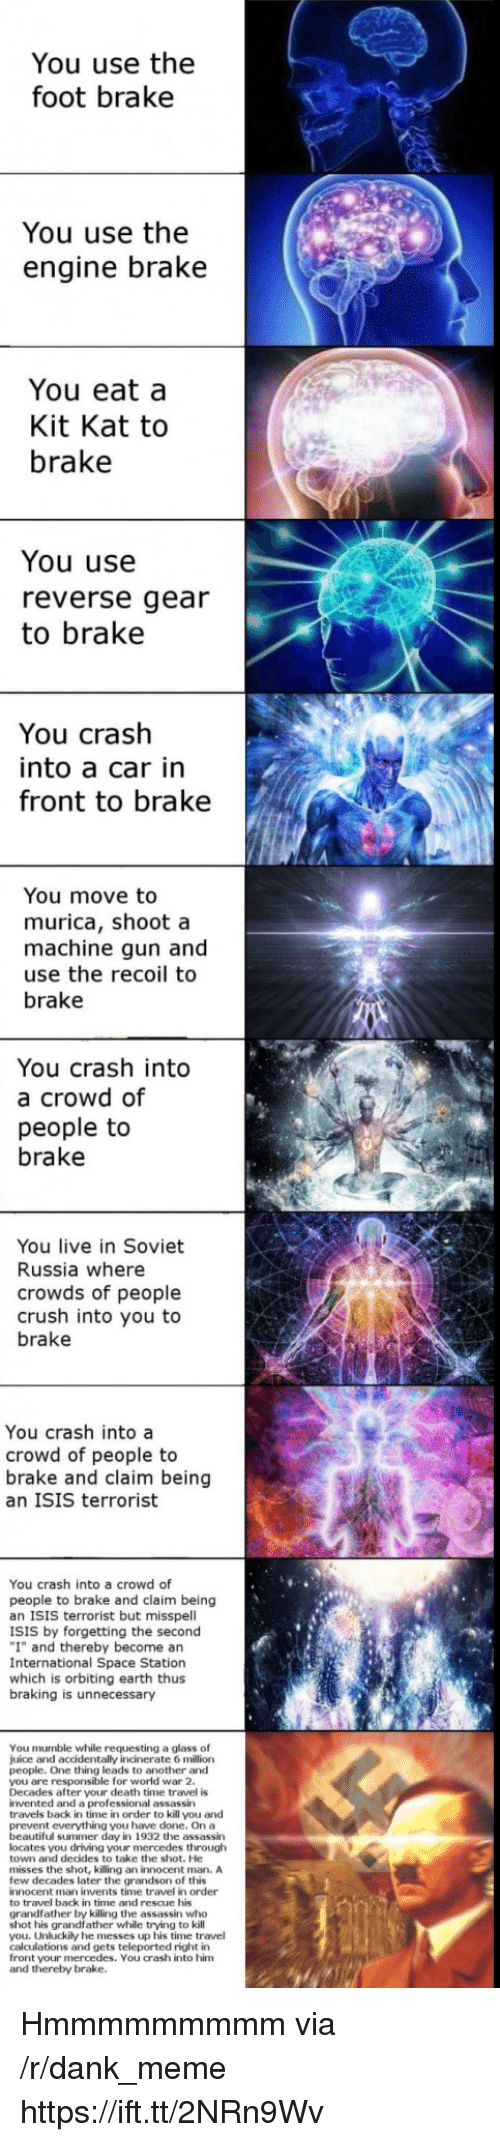 "Dank Meme: You use the  foot brake  You use the  engine brake  You eat a  Kit Kat to  brake  You use  reverse gear  to brake  You crash  into a car in  front to brake  You move to  murica, shoot a  machine gun and  use the recoil to  brake  You crash into  a crowd of  people to  brake  You live in Soviet  Russia where  crowds of people  crush into you to  brake  You crash into a  crowd of people to  brake and claim being  an ISIS terrorist  You crash into a crowd of  people to brake and claim being  an ISIS terrorist but misspell  ISIS by forgetting the second  ""I"" and thereby become an  International Space Station  which is orbiting earth thus  braking is unnecessary  You mumble while requesting a glass of  juice and accidentally incinerate 6 million  people. One thing leads to another and  you are responsible for world war 2  Decades after your death time travel is  invented and a professional assassin  travels back in time in order to kill you and  prevent everything you have done. On a  beautiful summer day in 1932 the assassin  locates you driving your mercedes througlh  town and decides to take the shot. He  misses the shot, killing an innocent man. A  few decades later the grandson of this  innocent man invents time travel in order  to travel back in time and rescue his  grandfather by killing the assassin who  shot his grandfather while trying to kill  you. Unluckily he messes up his time travel  calculations and gets teleported right in  front your mercedes. You crash into him  and thereby brake. Hmmmmmmmmm via /r/dank_meme https://ift.tt/2NRn9Wv"